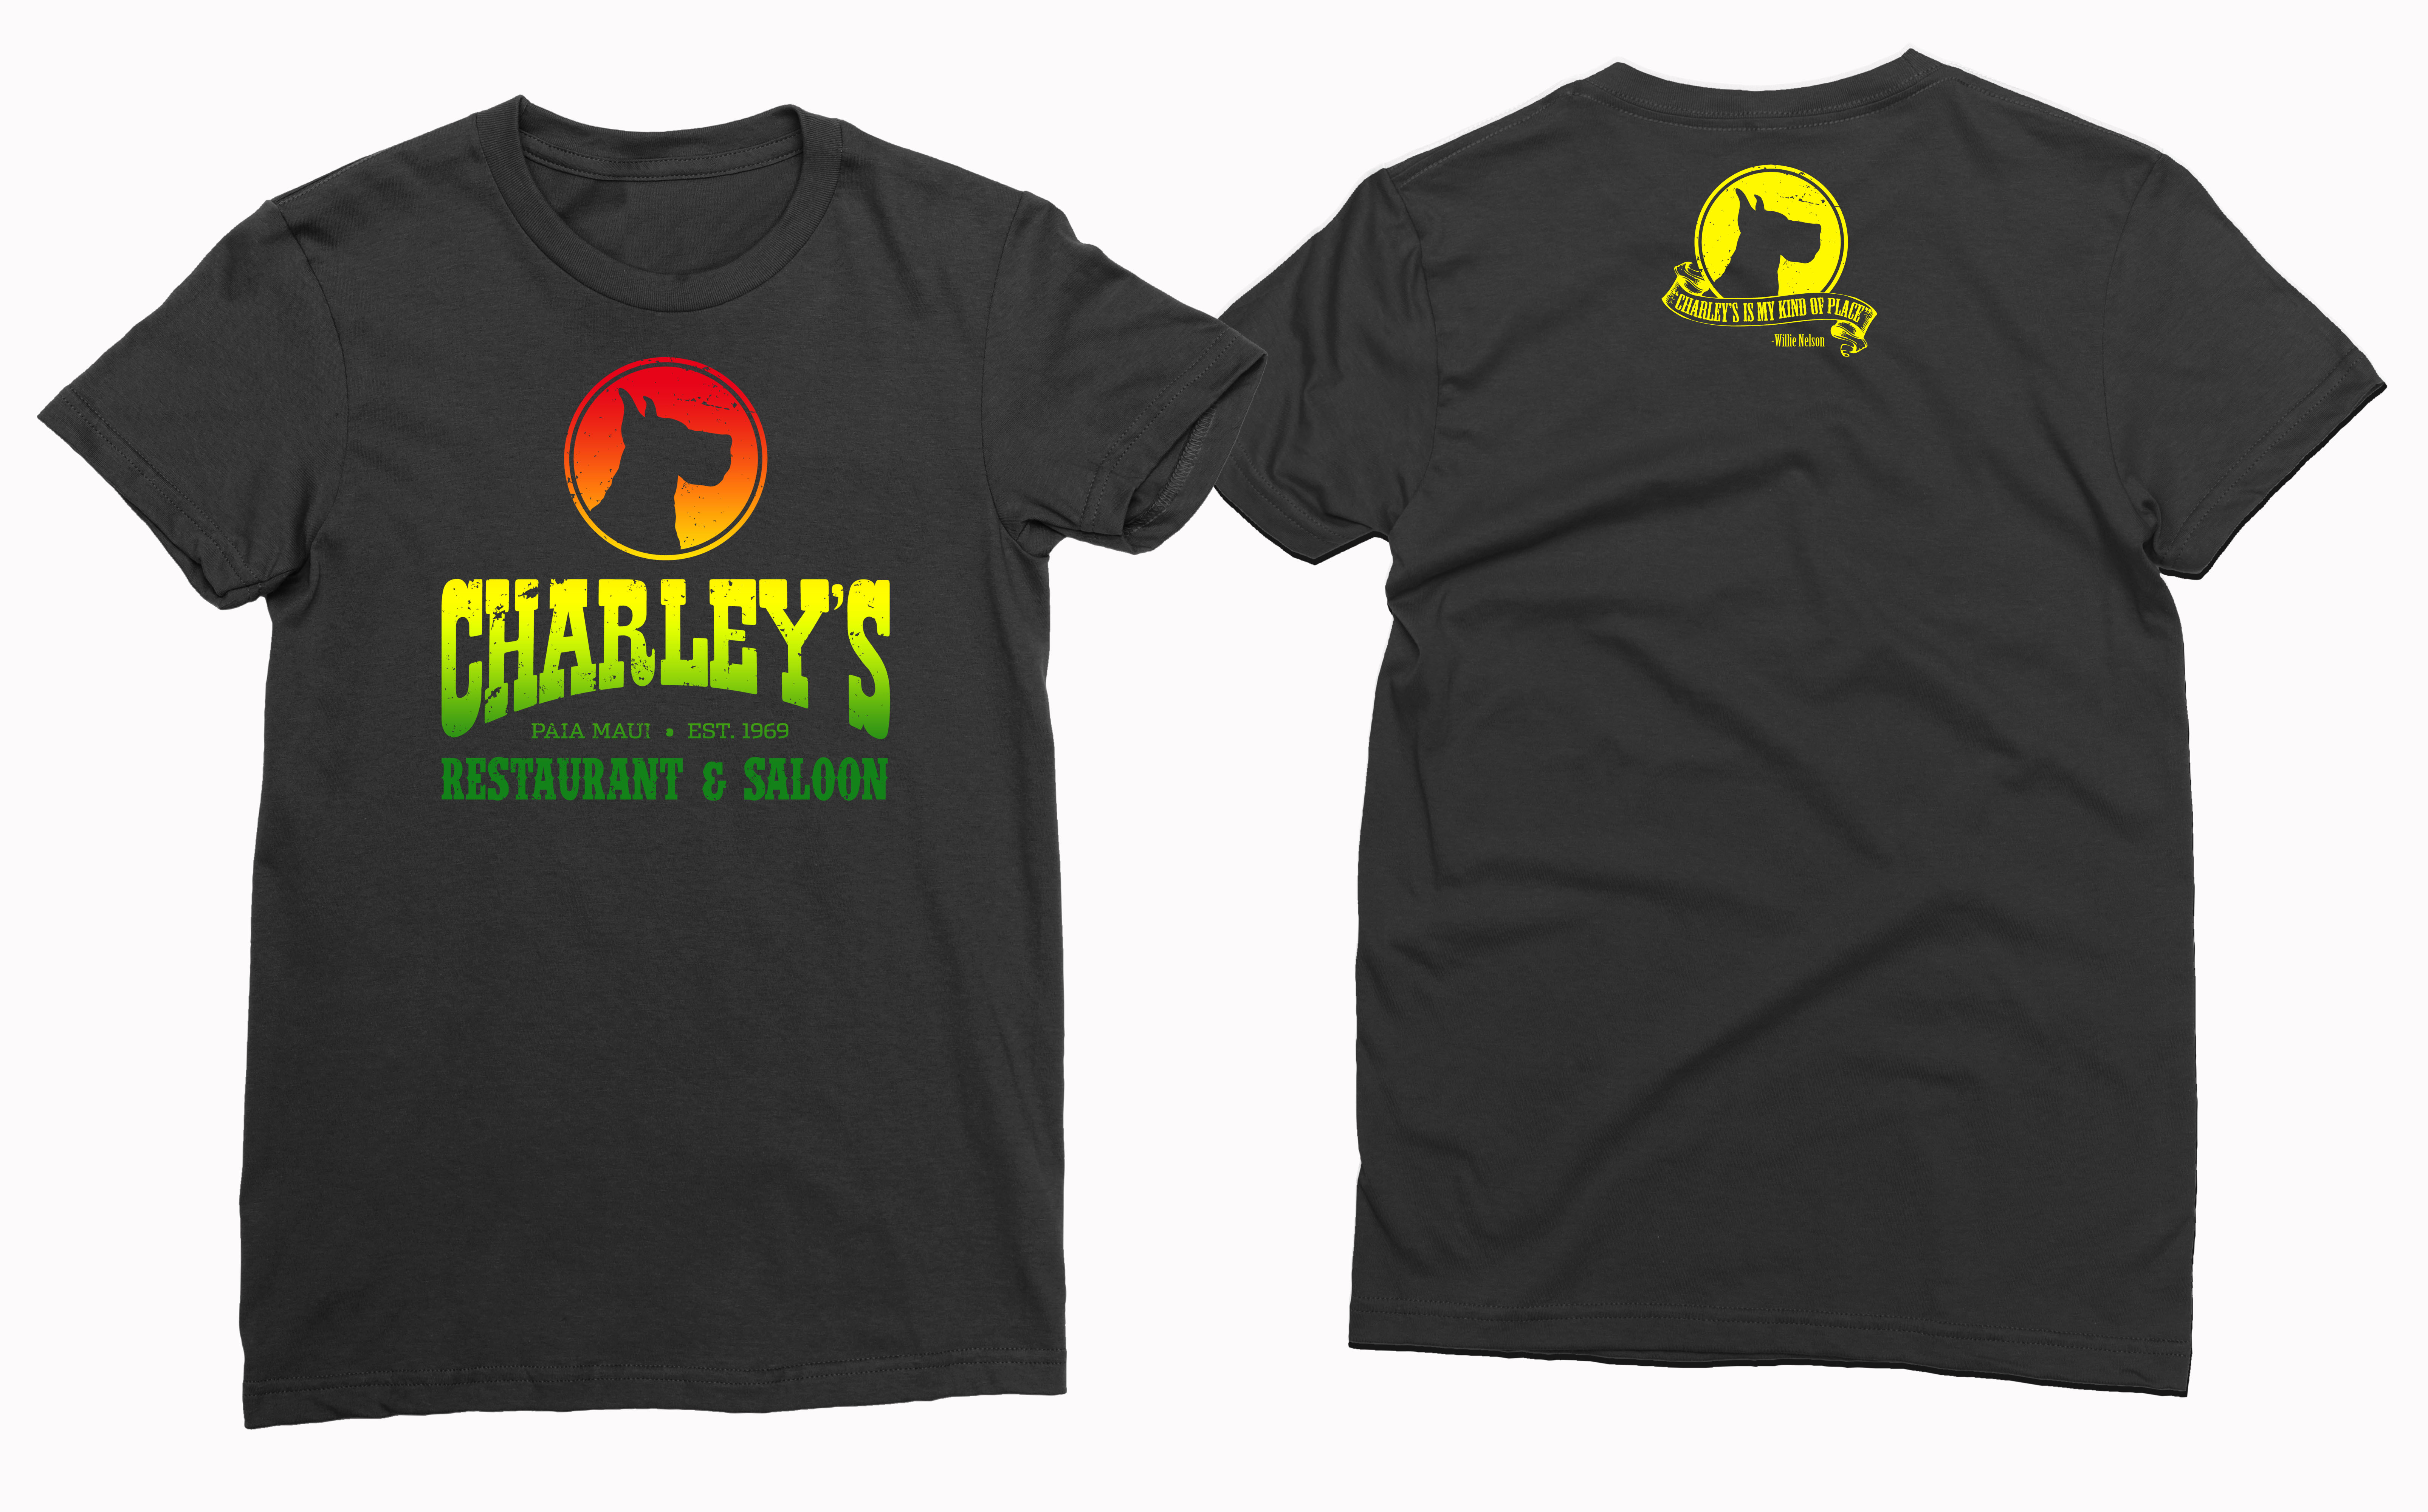 Women's BabyT - Black with rasta logo